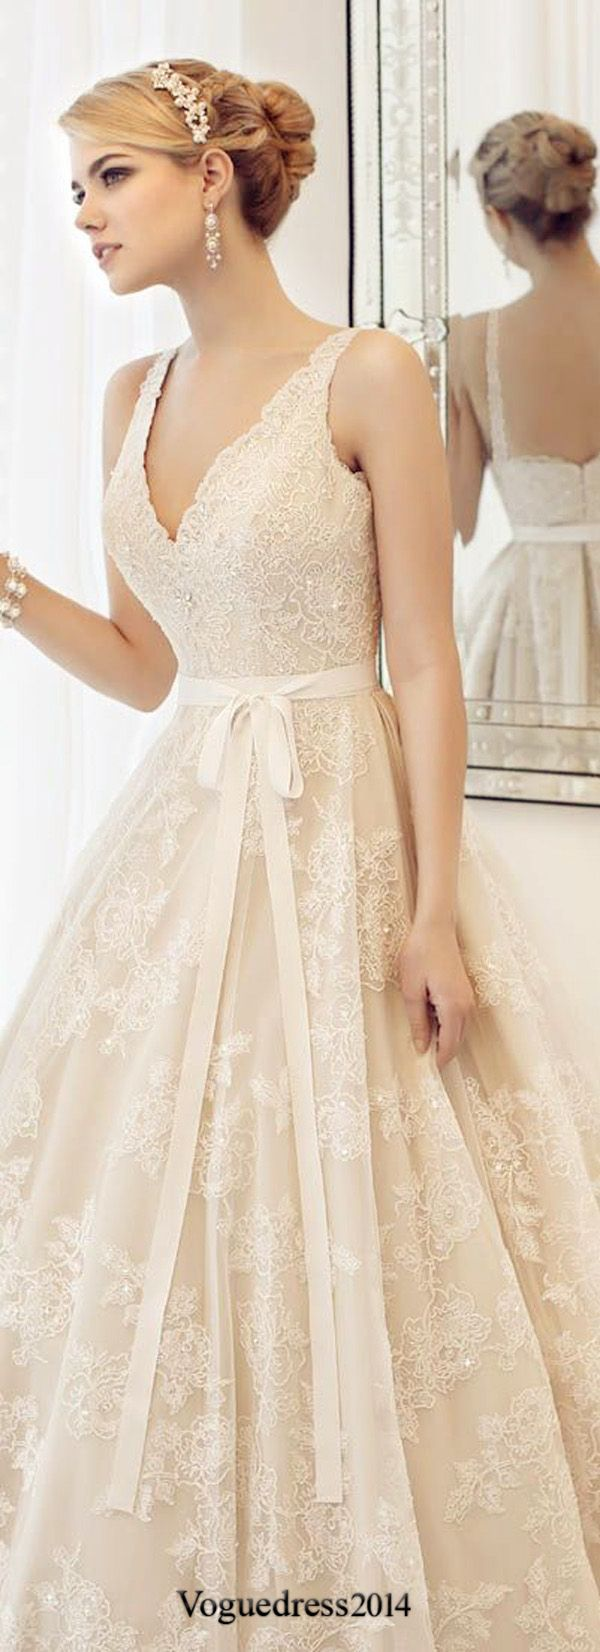 vintage lace wedding dresses with ribbon #weddingdress